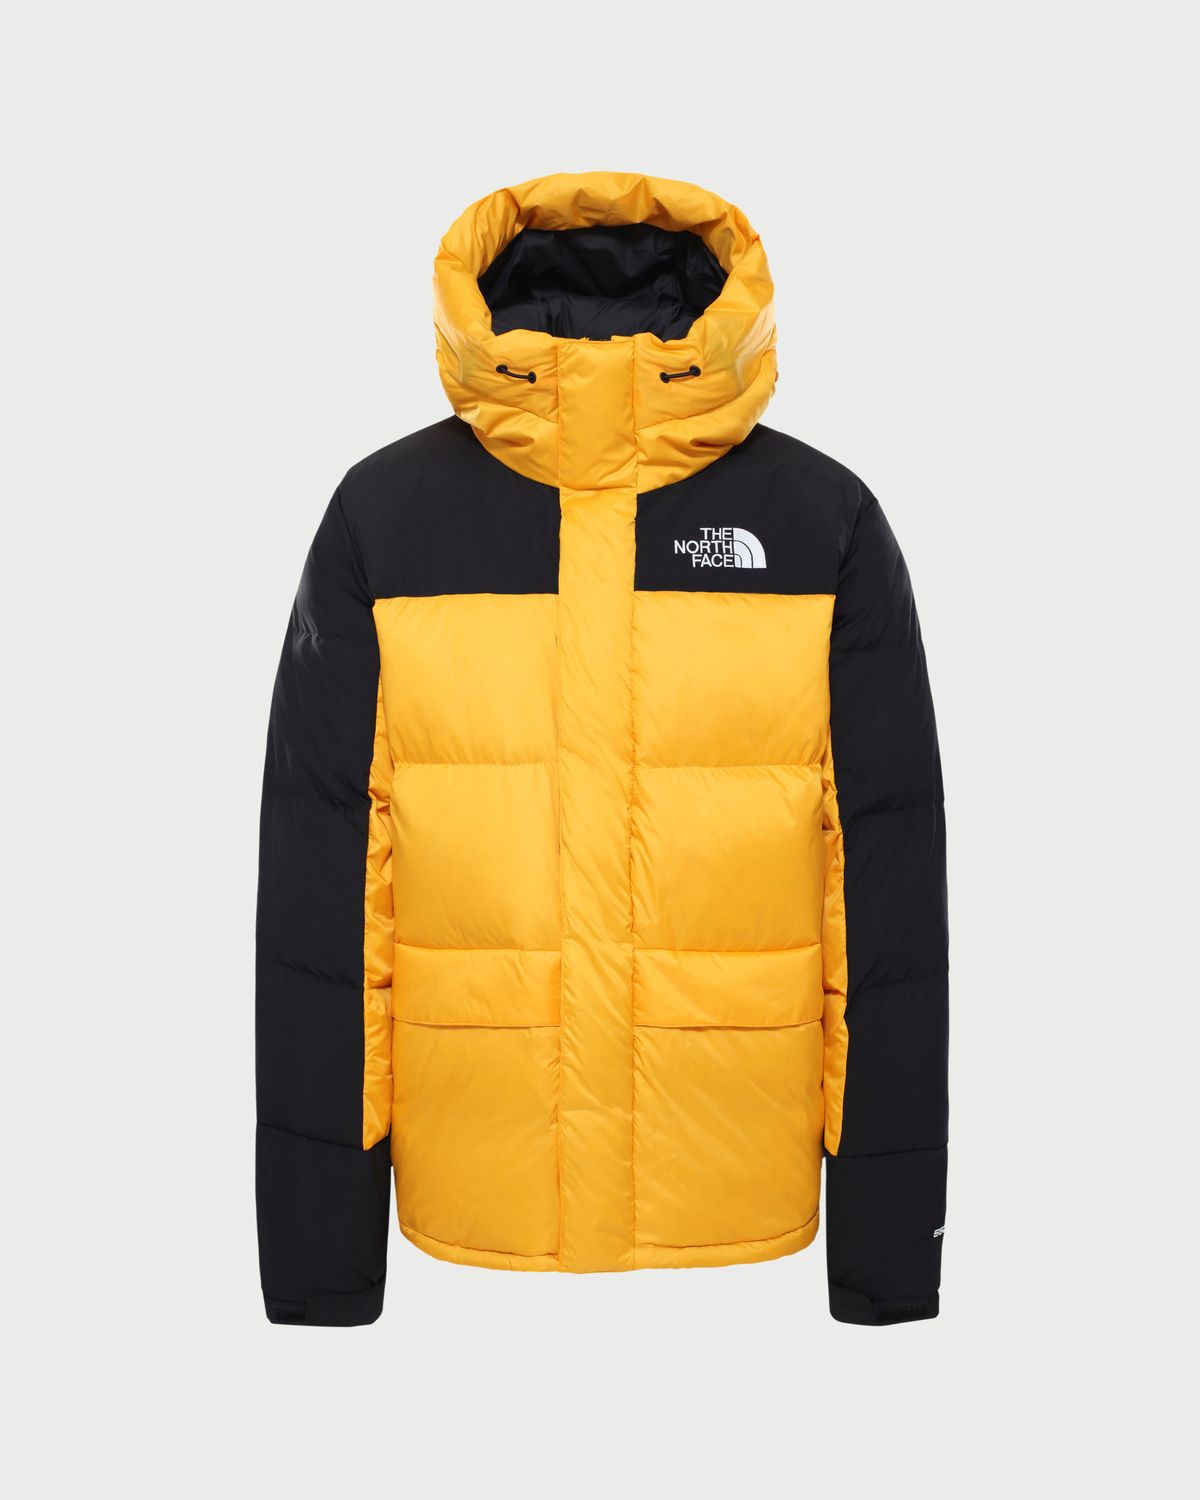 The North Face - Himalayan Down Jacket Peak Summit Gold Unisex - Image 1